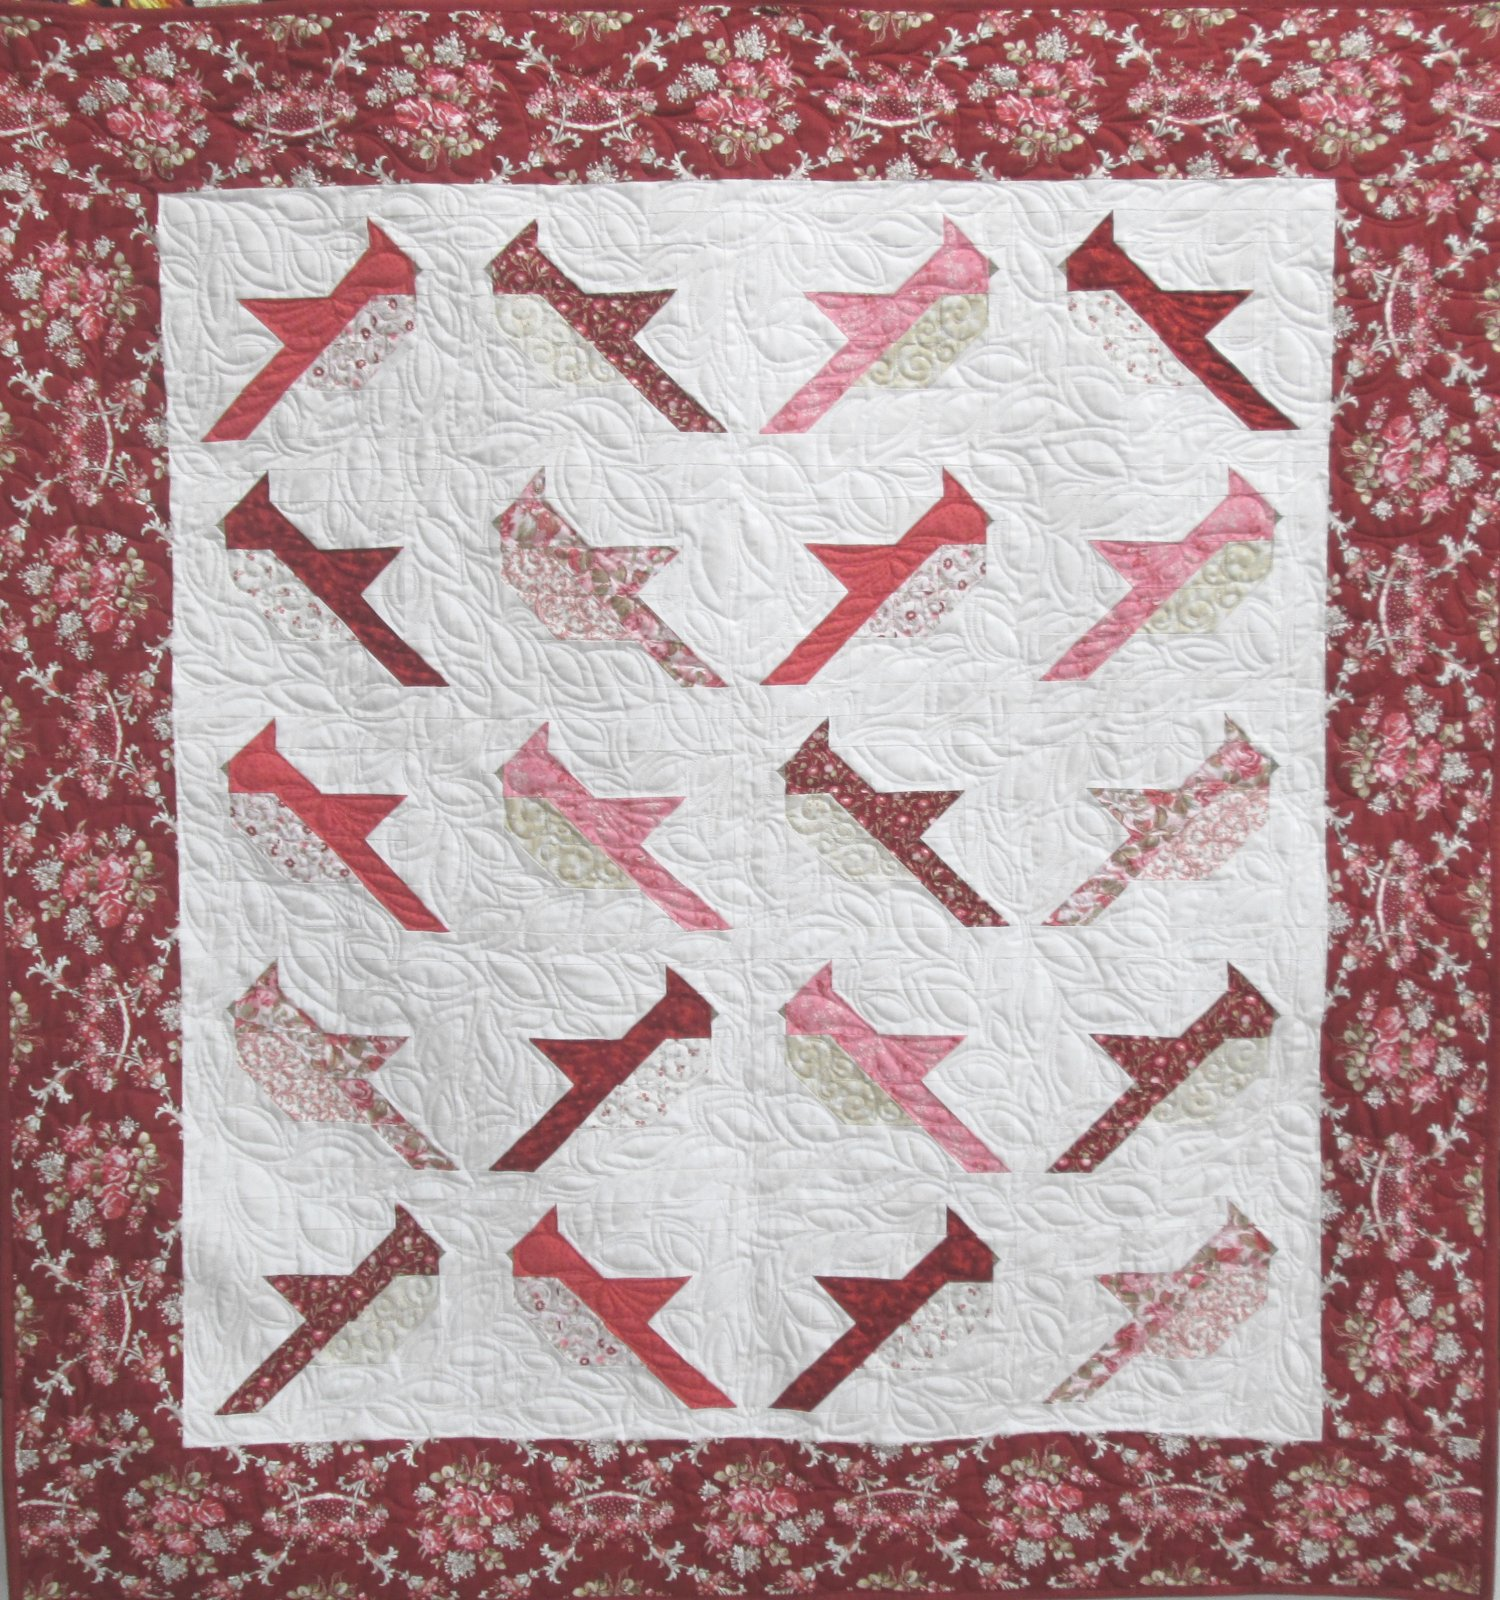 Rhapsody in Red Cardinals Quilt Kit